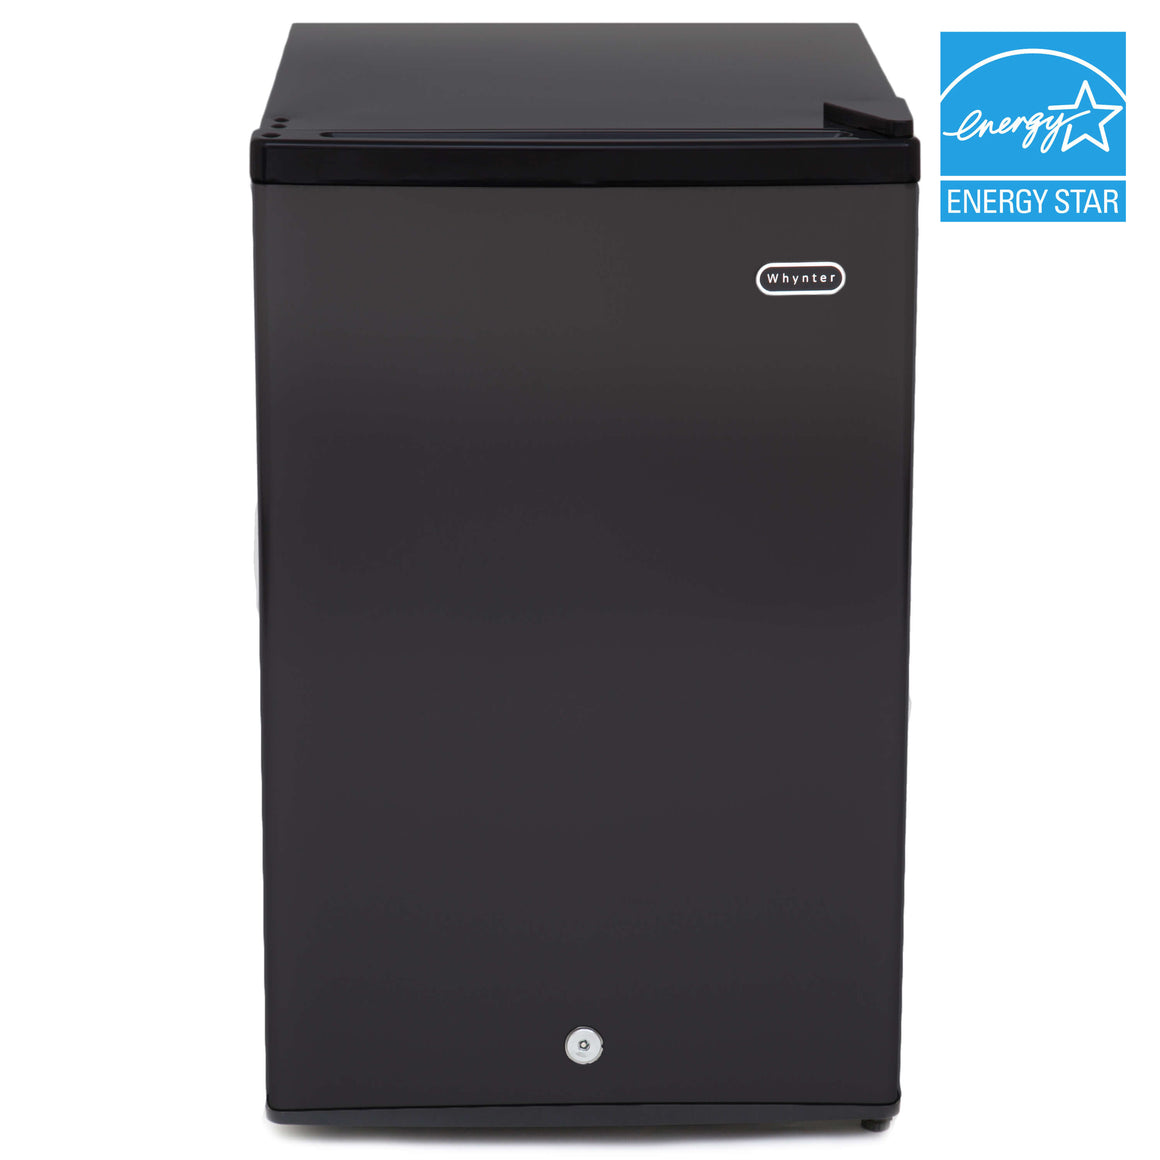 Whynter 3.0 cu. ft. Energy Star Upright Freezer with Lock – Black - CUF-301BK - Wine Cooler City